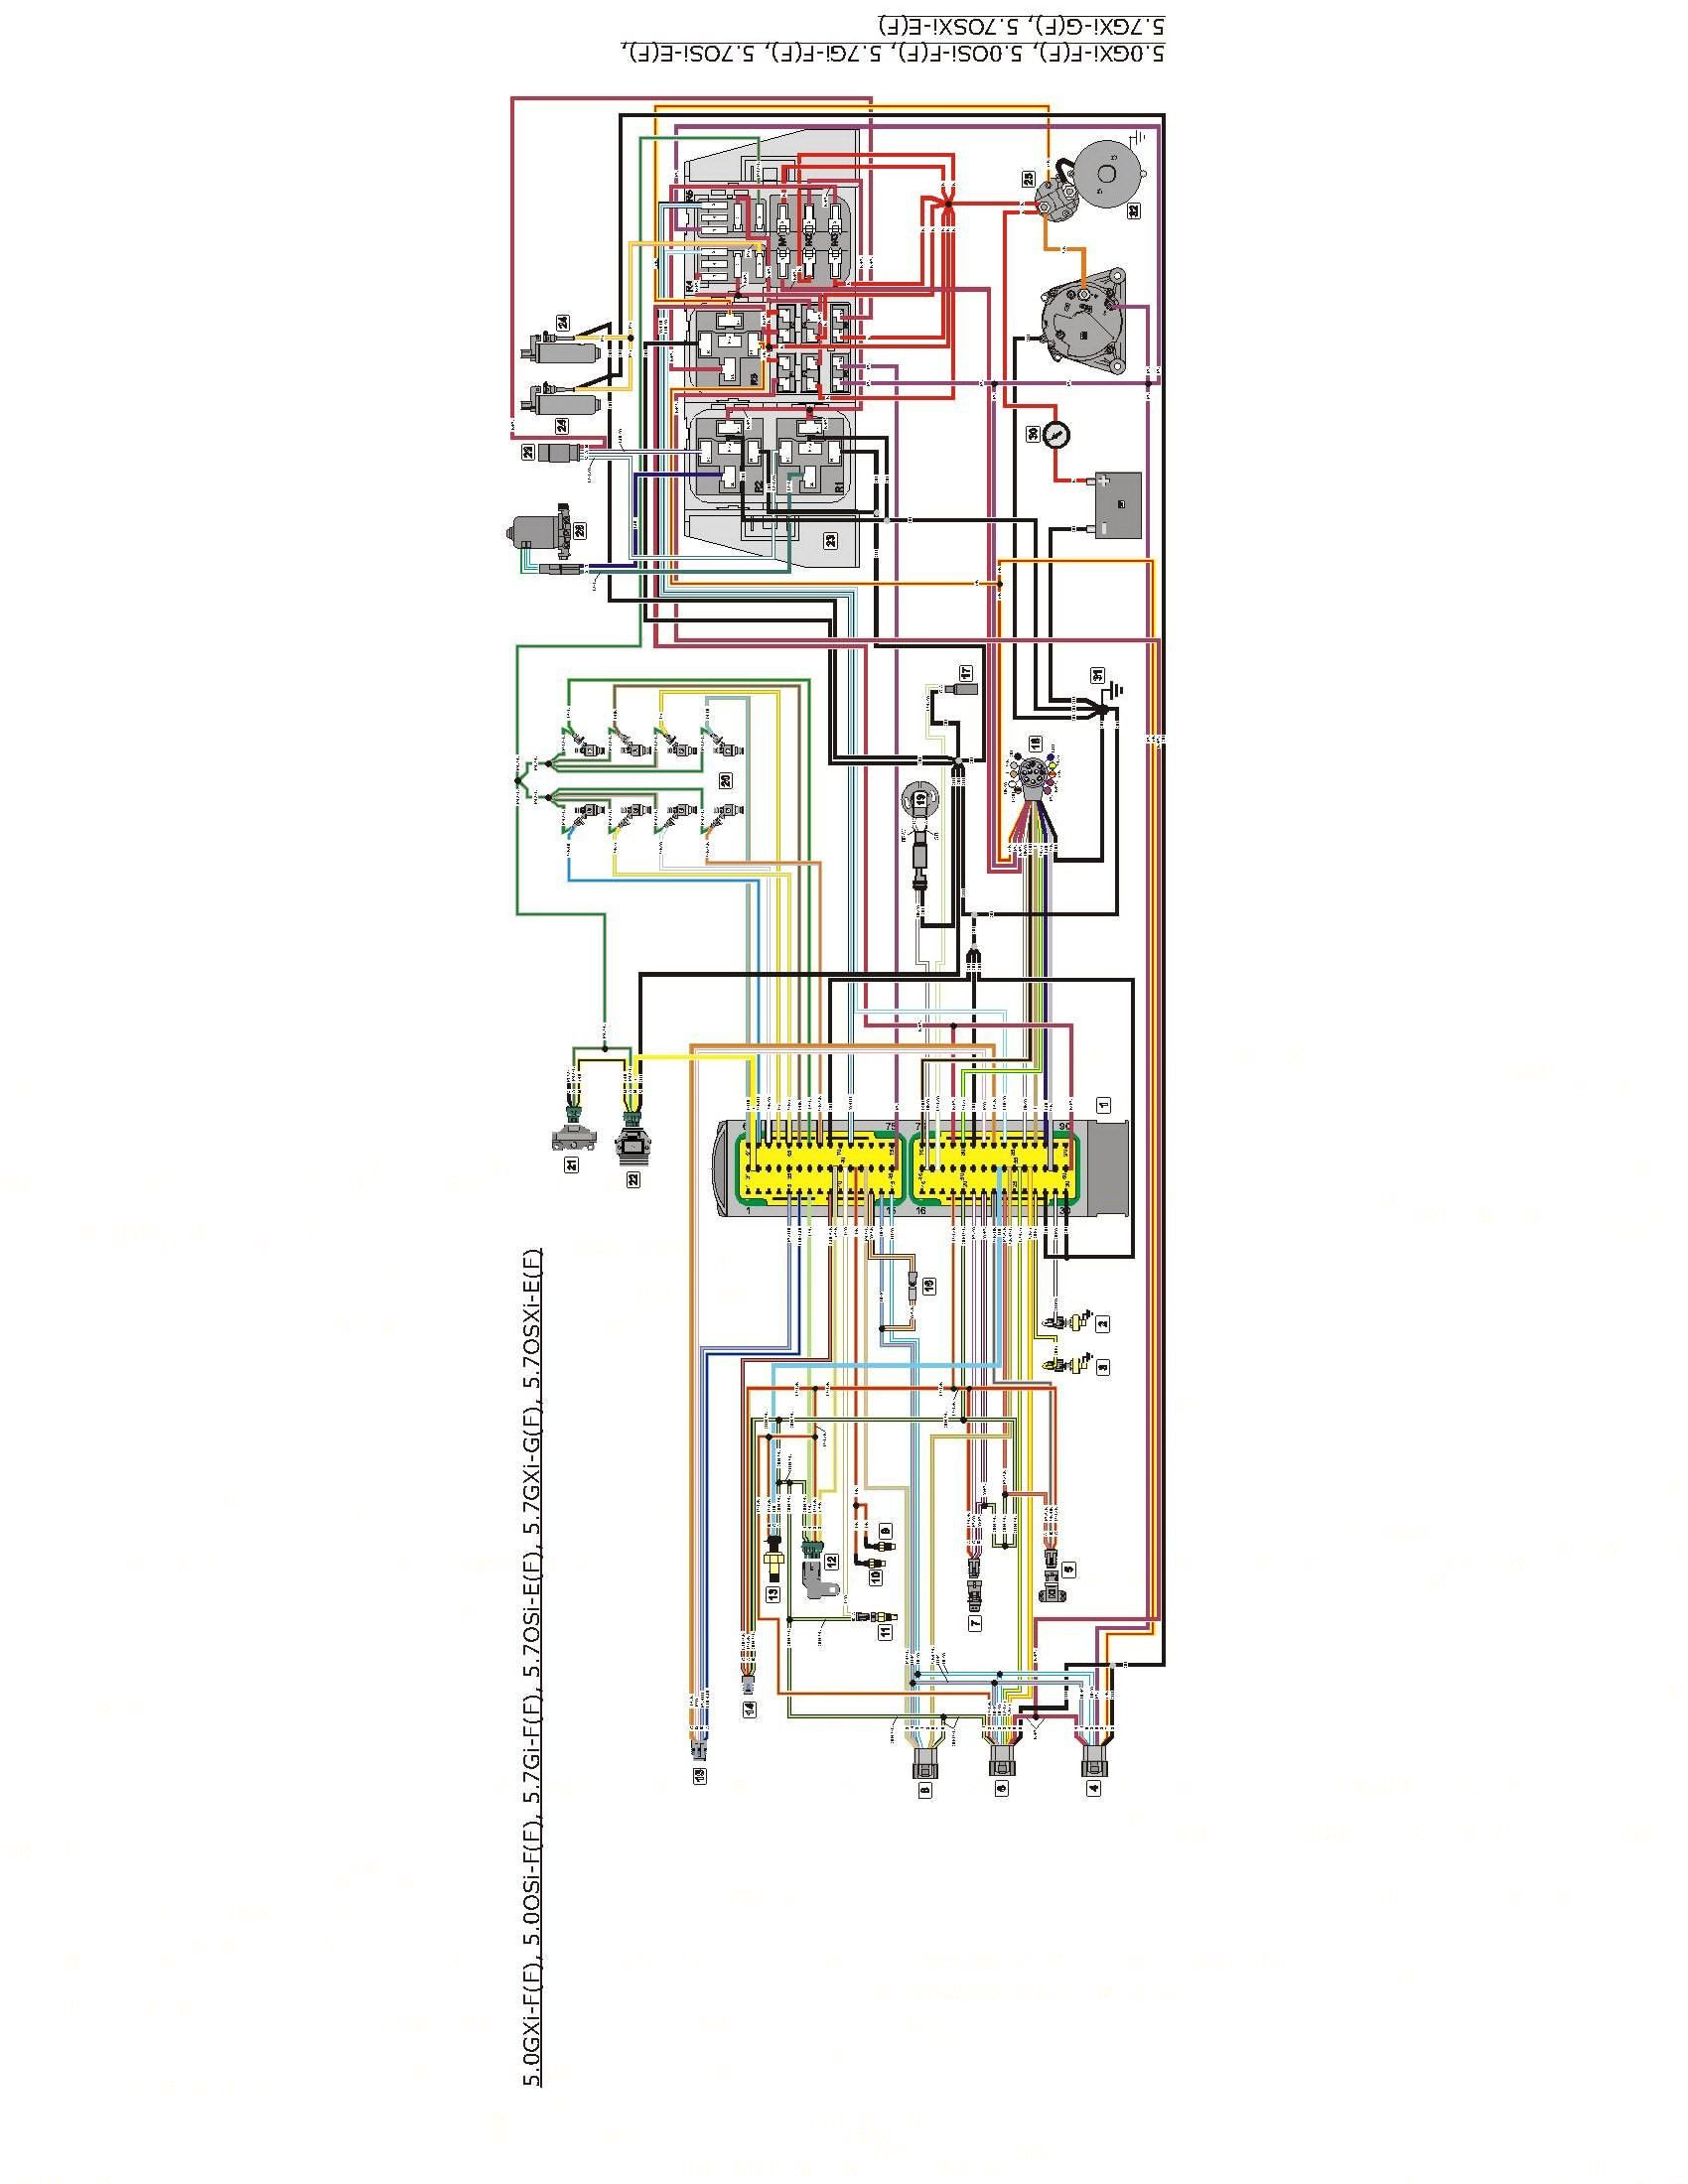 mercury outboard power trim wiring diagram lovely wiring diagram for  mercury outboard power trim wiring diagram lovely wiring diagram for volvo penta trim volvo penta trim motor volvo